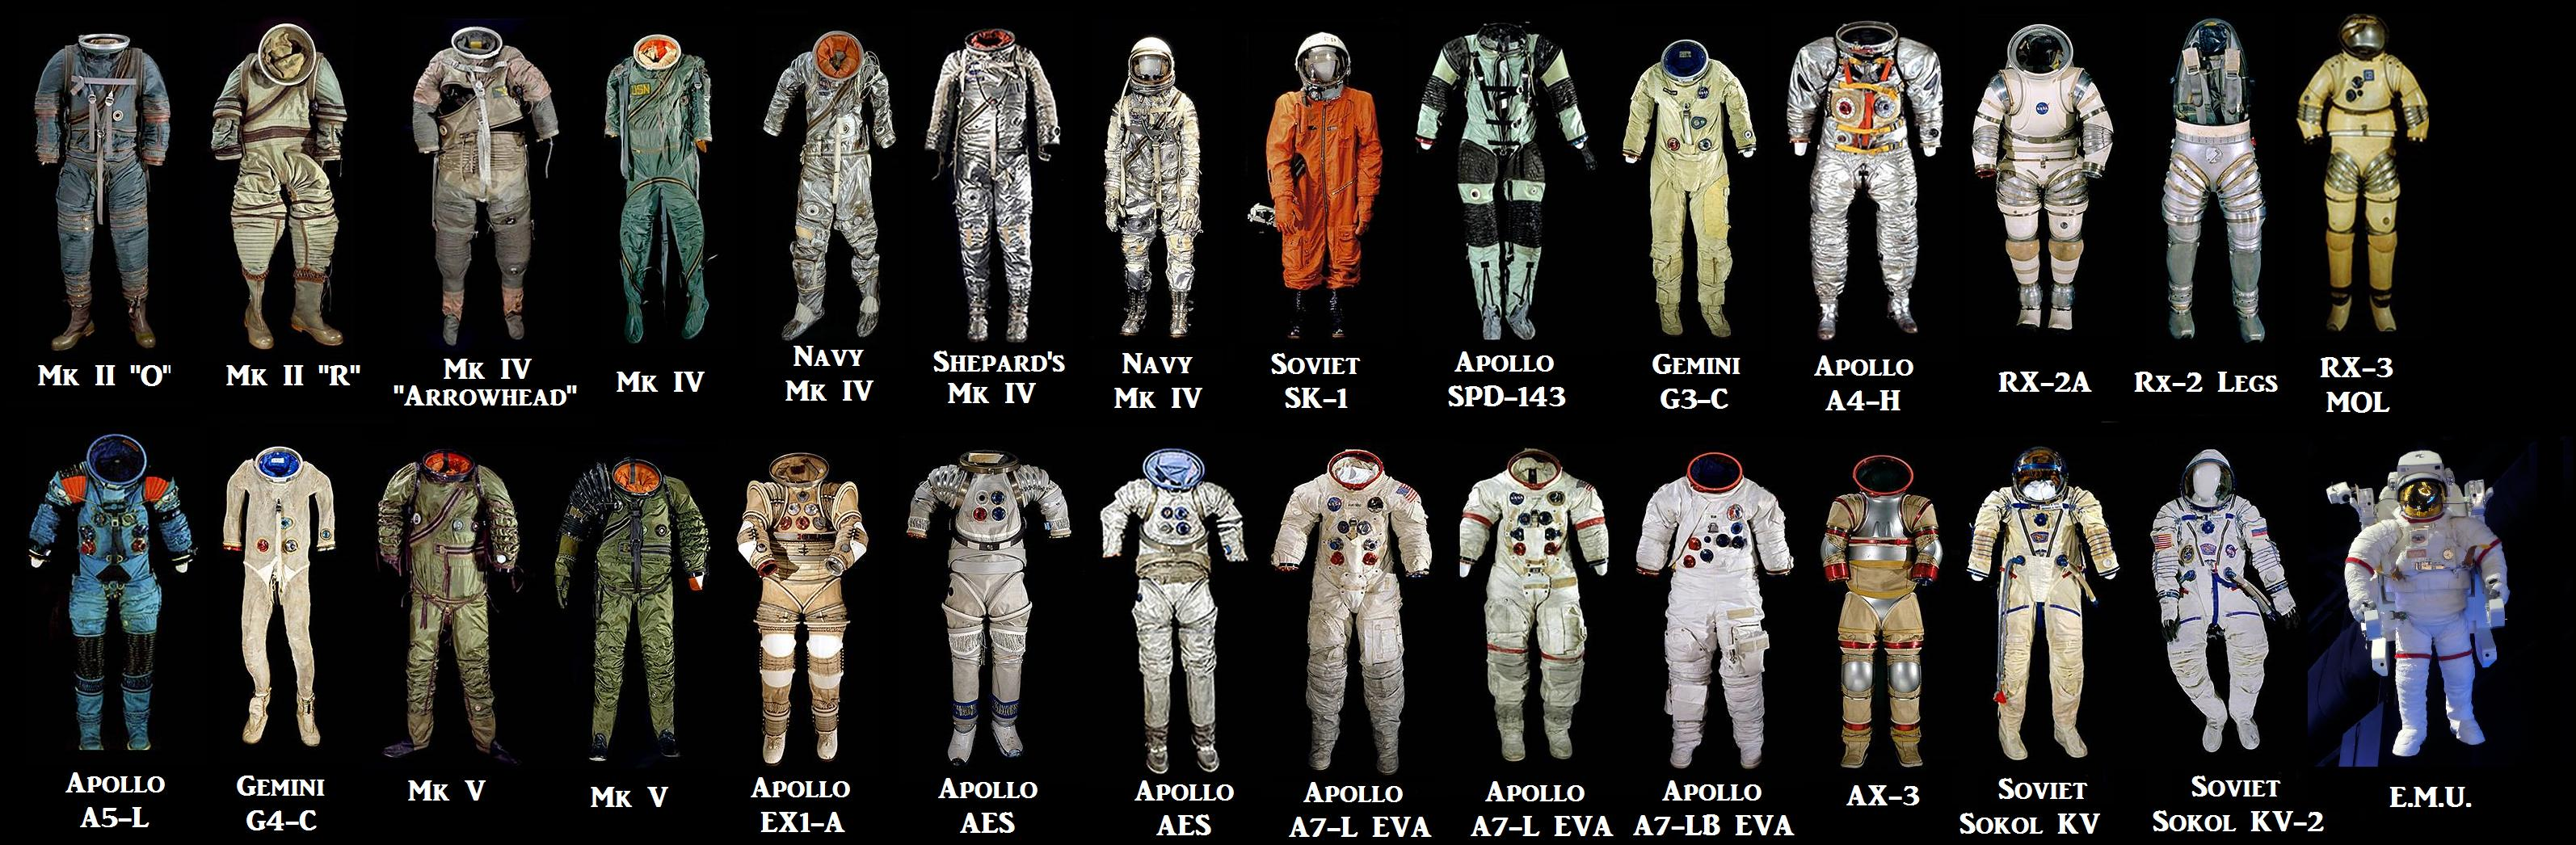 apollo space suit development - photo #34